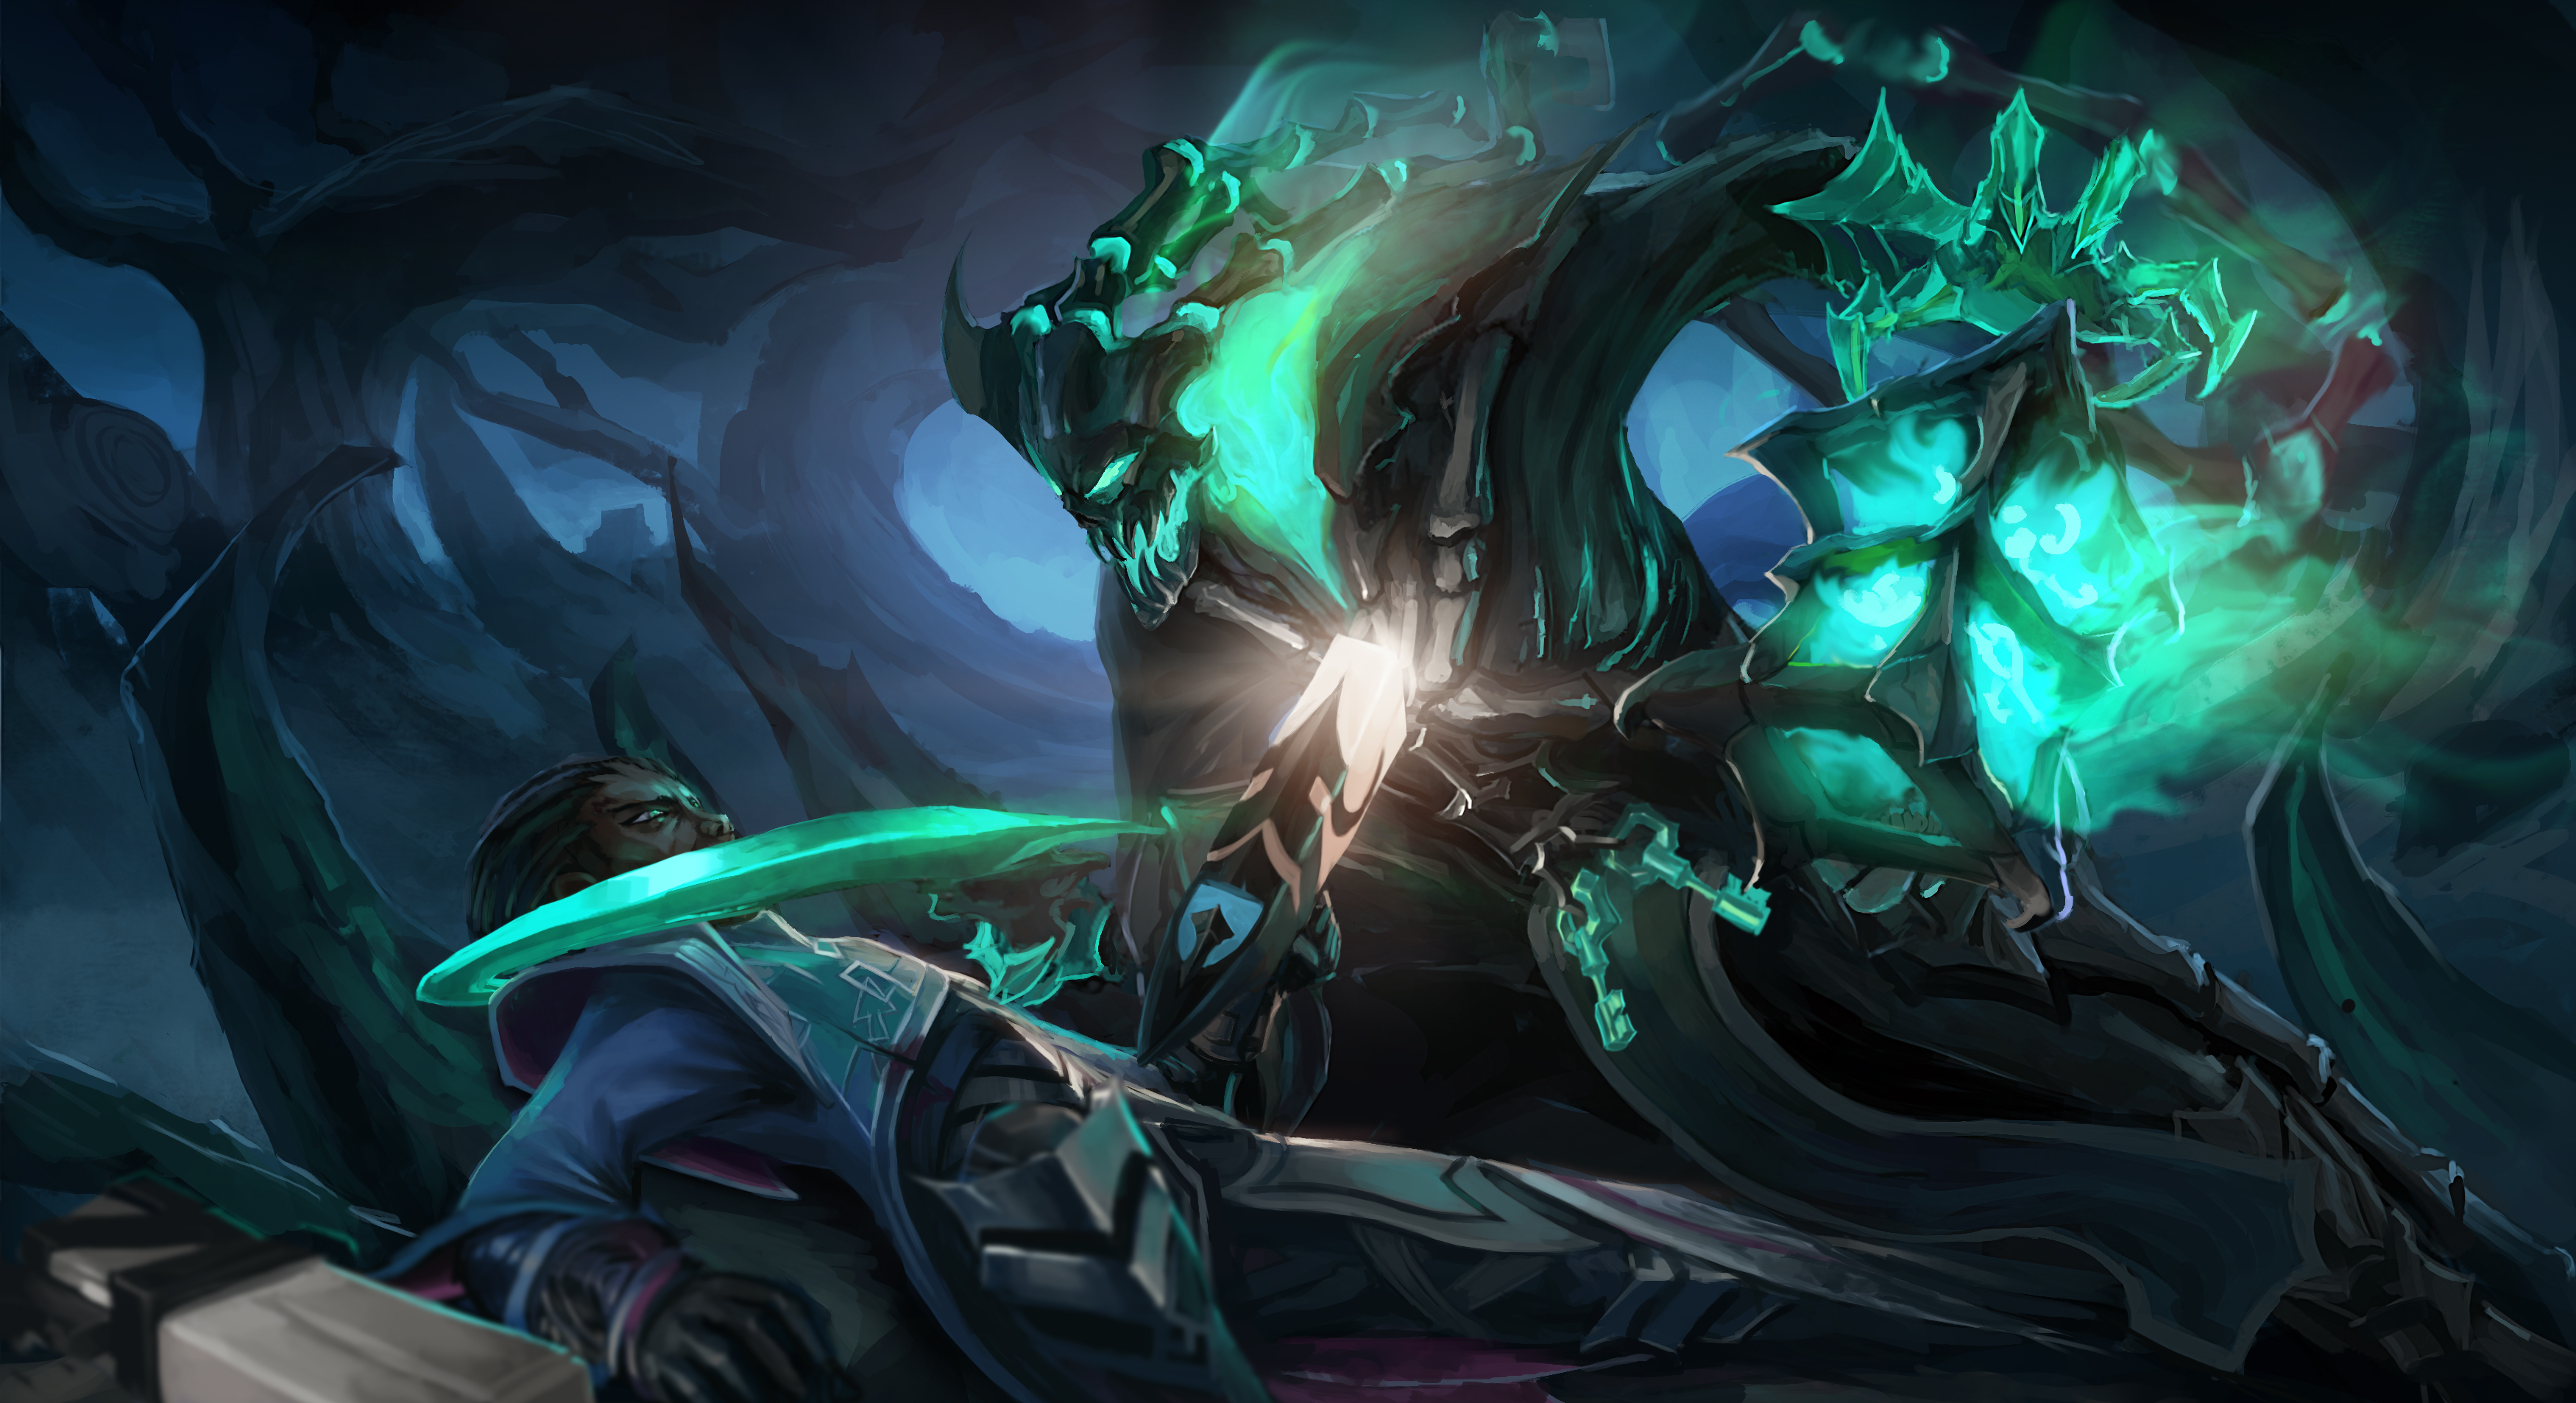 Thresh Vs Lucian wallpaper